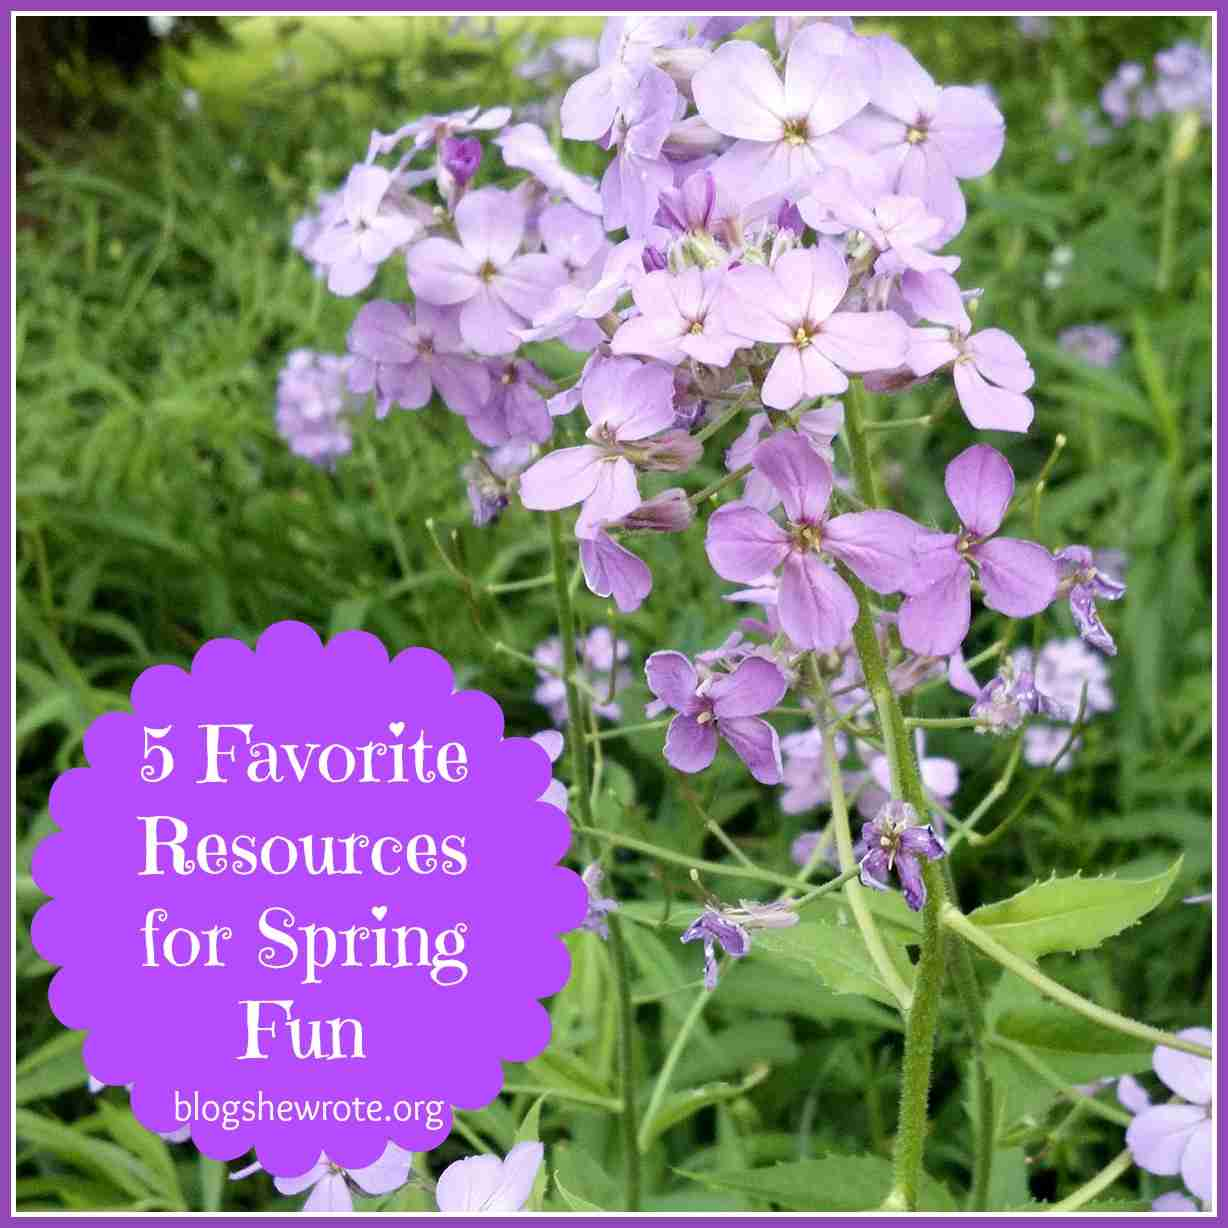 Bright Ideas Press: 5 Favorite Resources for Spring Fun